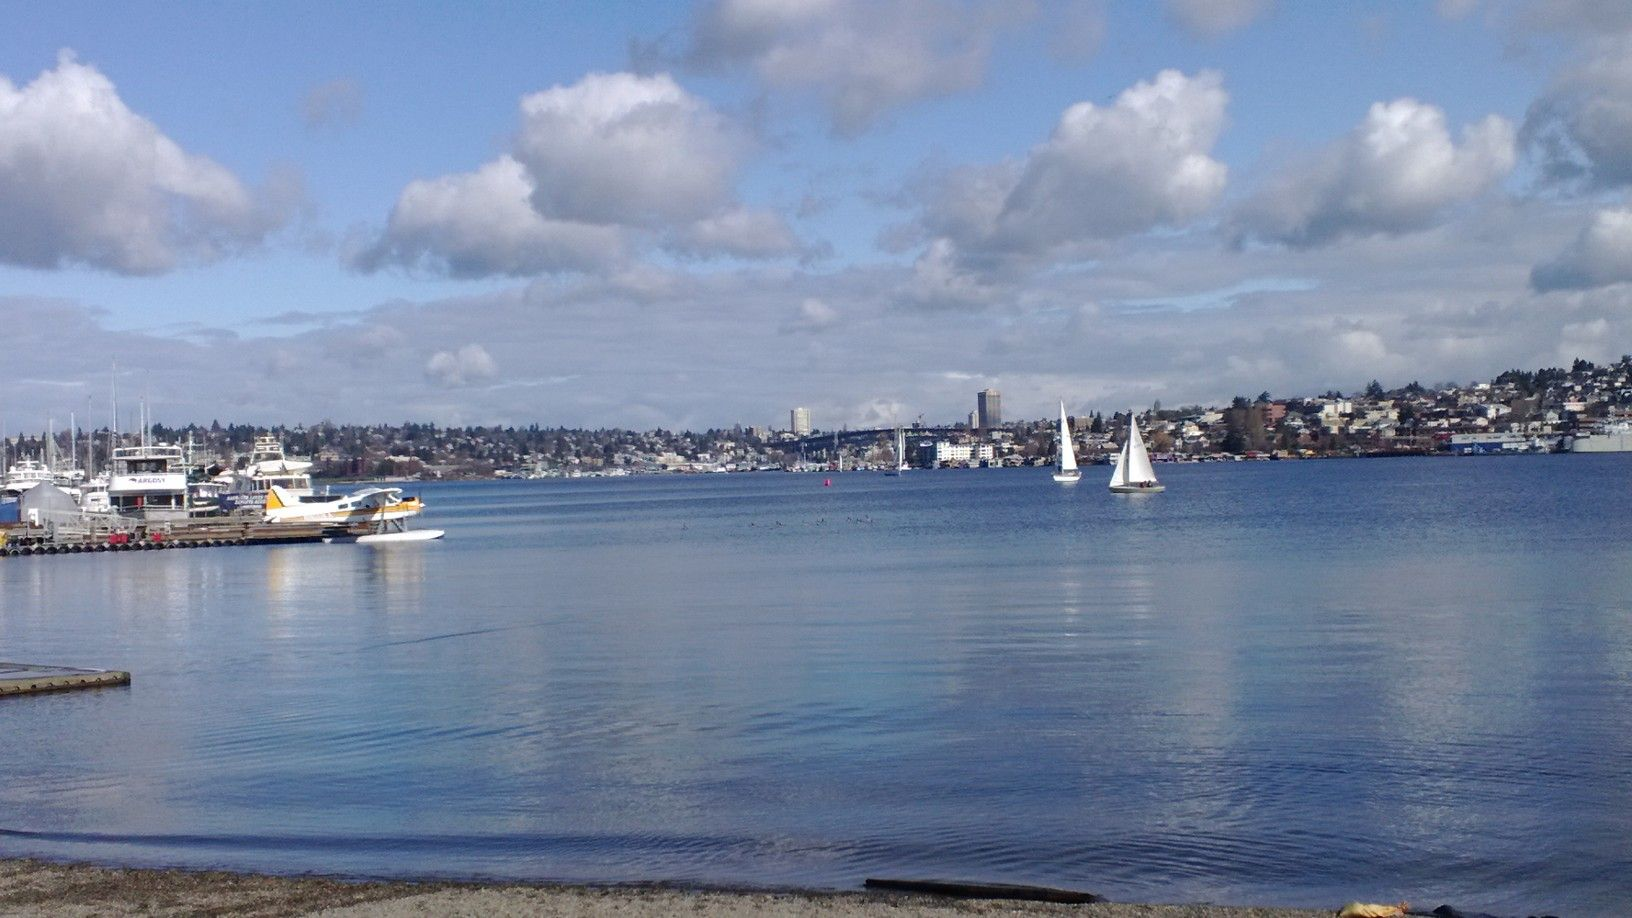 South Lake Union from the shore